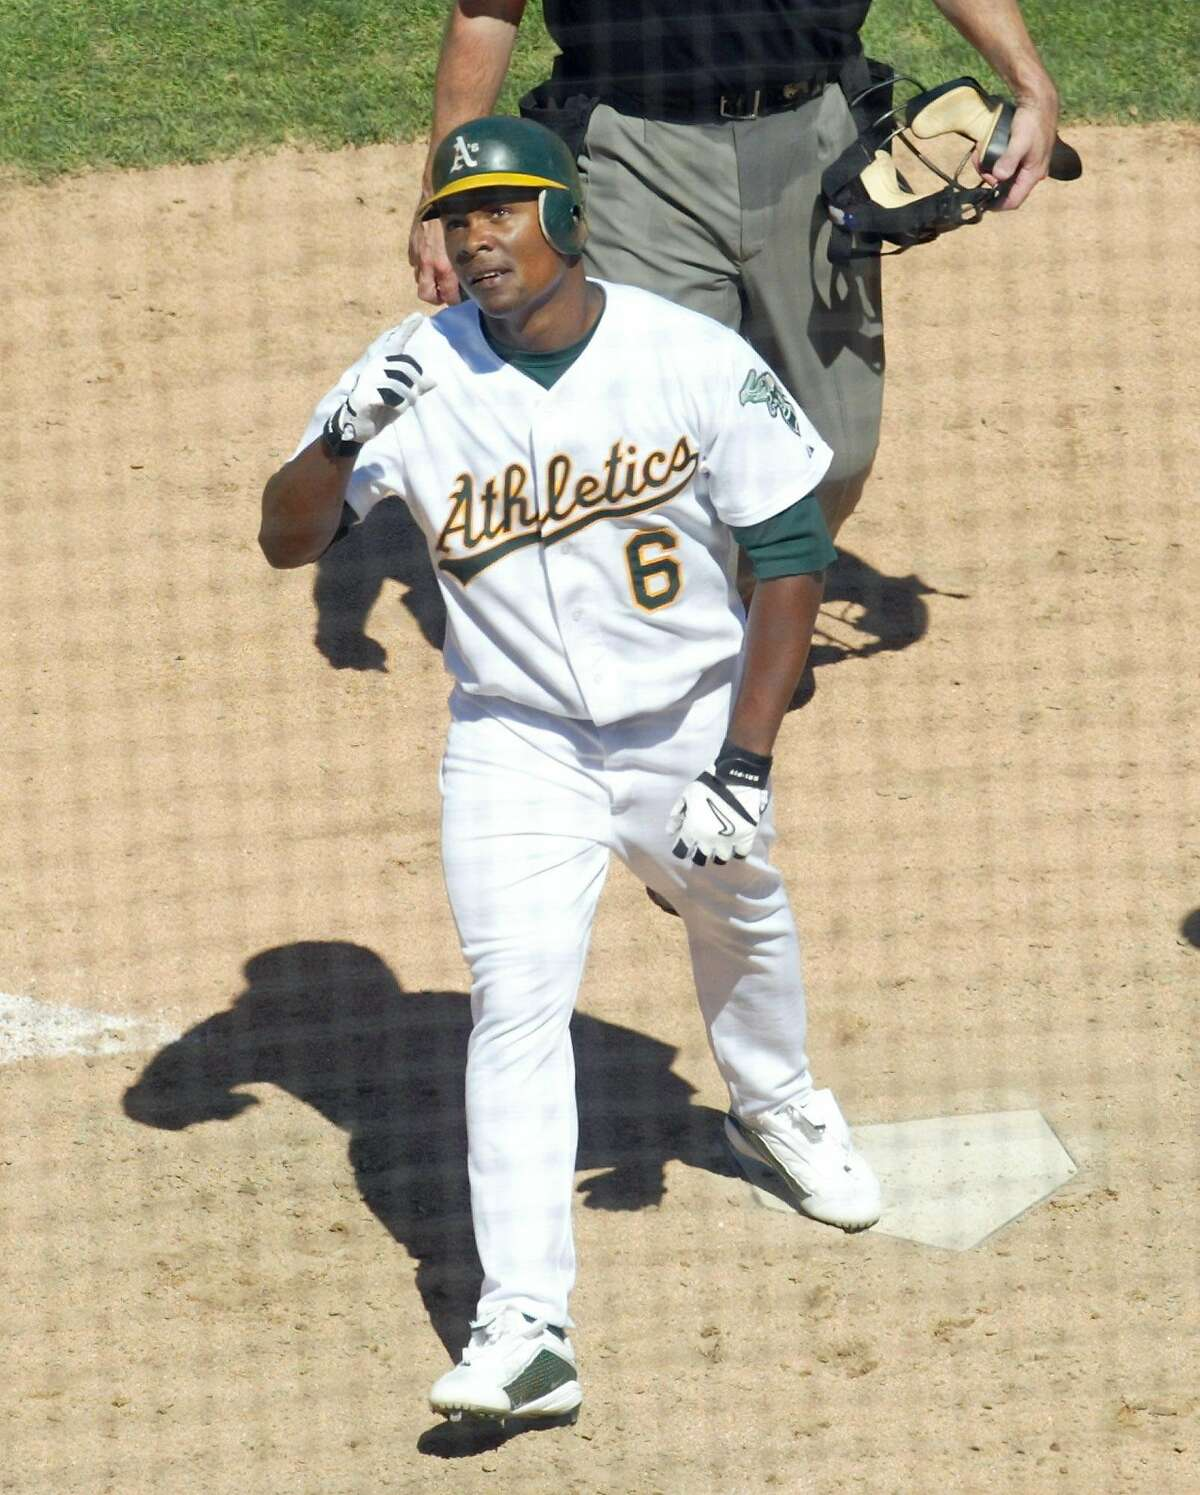 Oakland Athletics' Jose Guillen points to the sky after hitting his second solo home run of the day against the Toronto Blue Jays, in the seventh inning Saturday, Aug. 16, 2003, in Oakland, Calif. The A's won 6-4. (AP Photo/D. Ross Cameron)